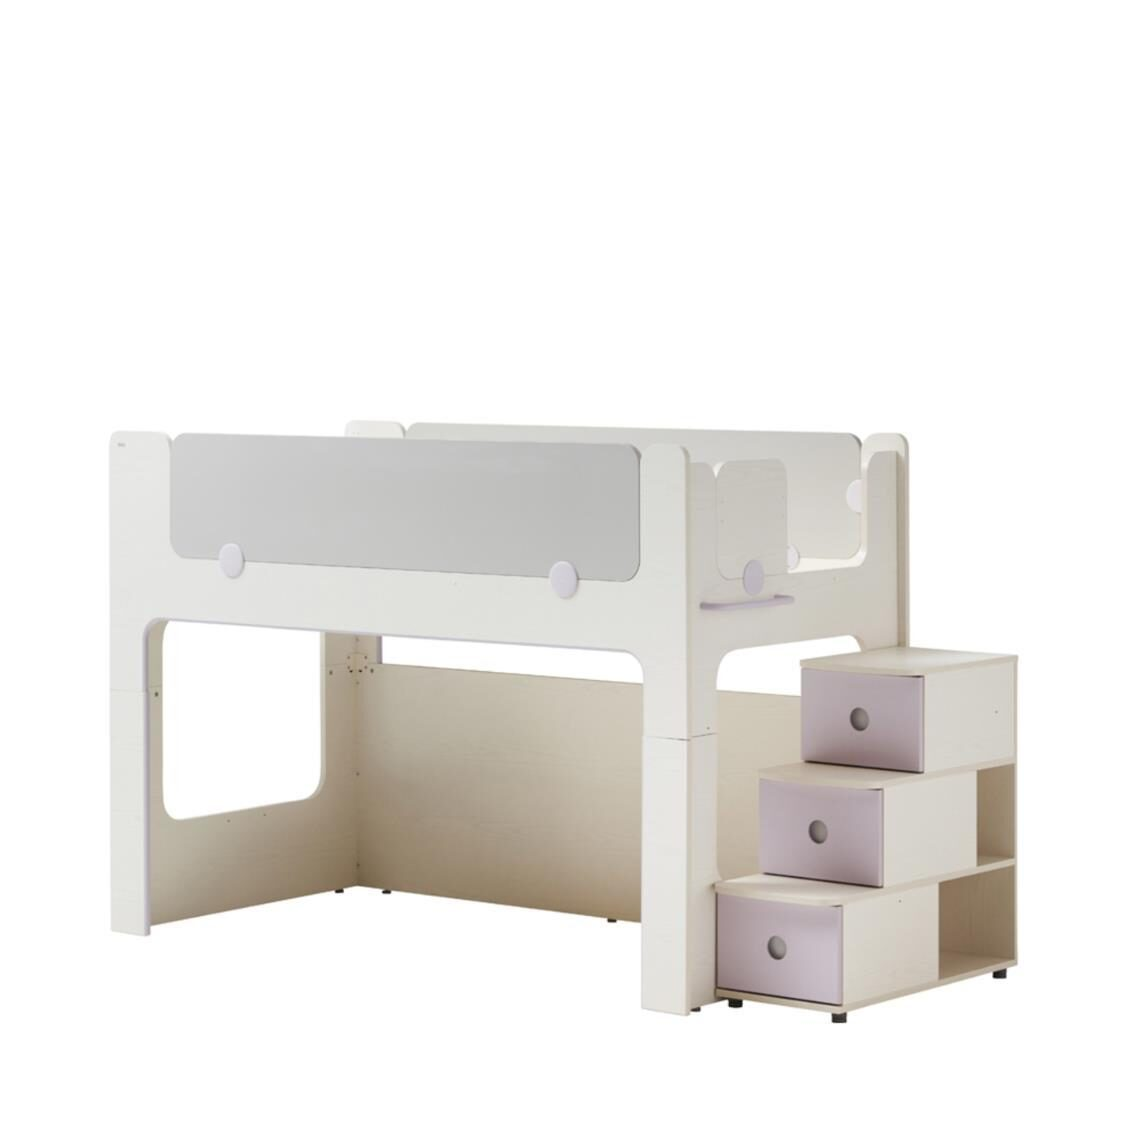 Cabin Bunk Bed Stairs Cabinet FIVLU Finland Ivory Light Purple